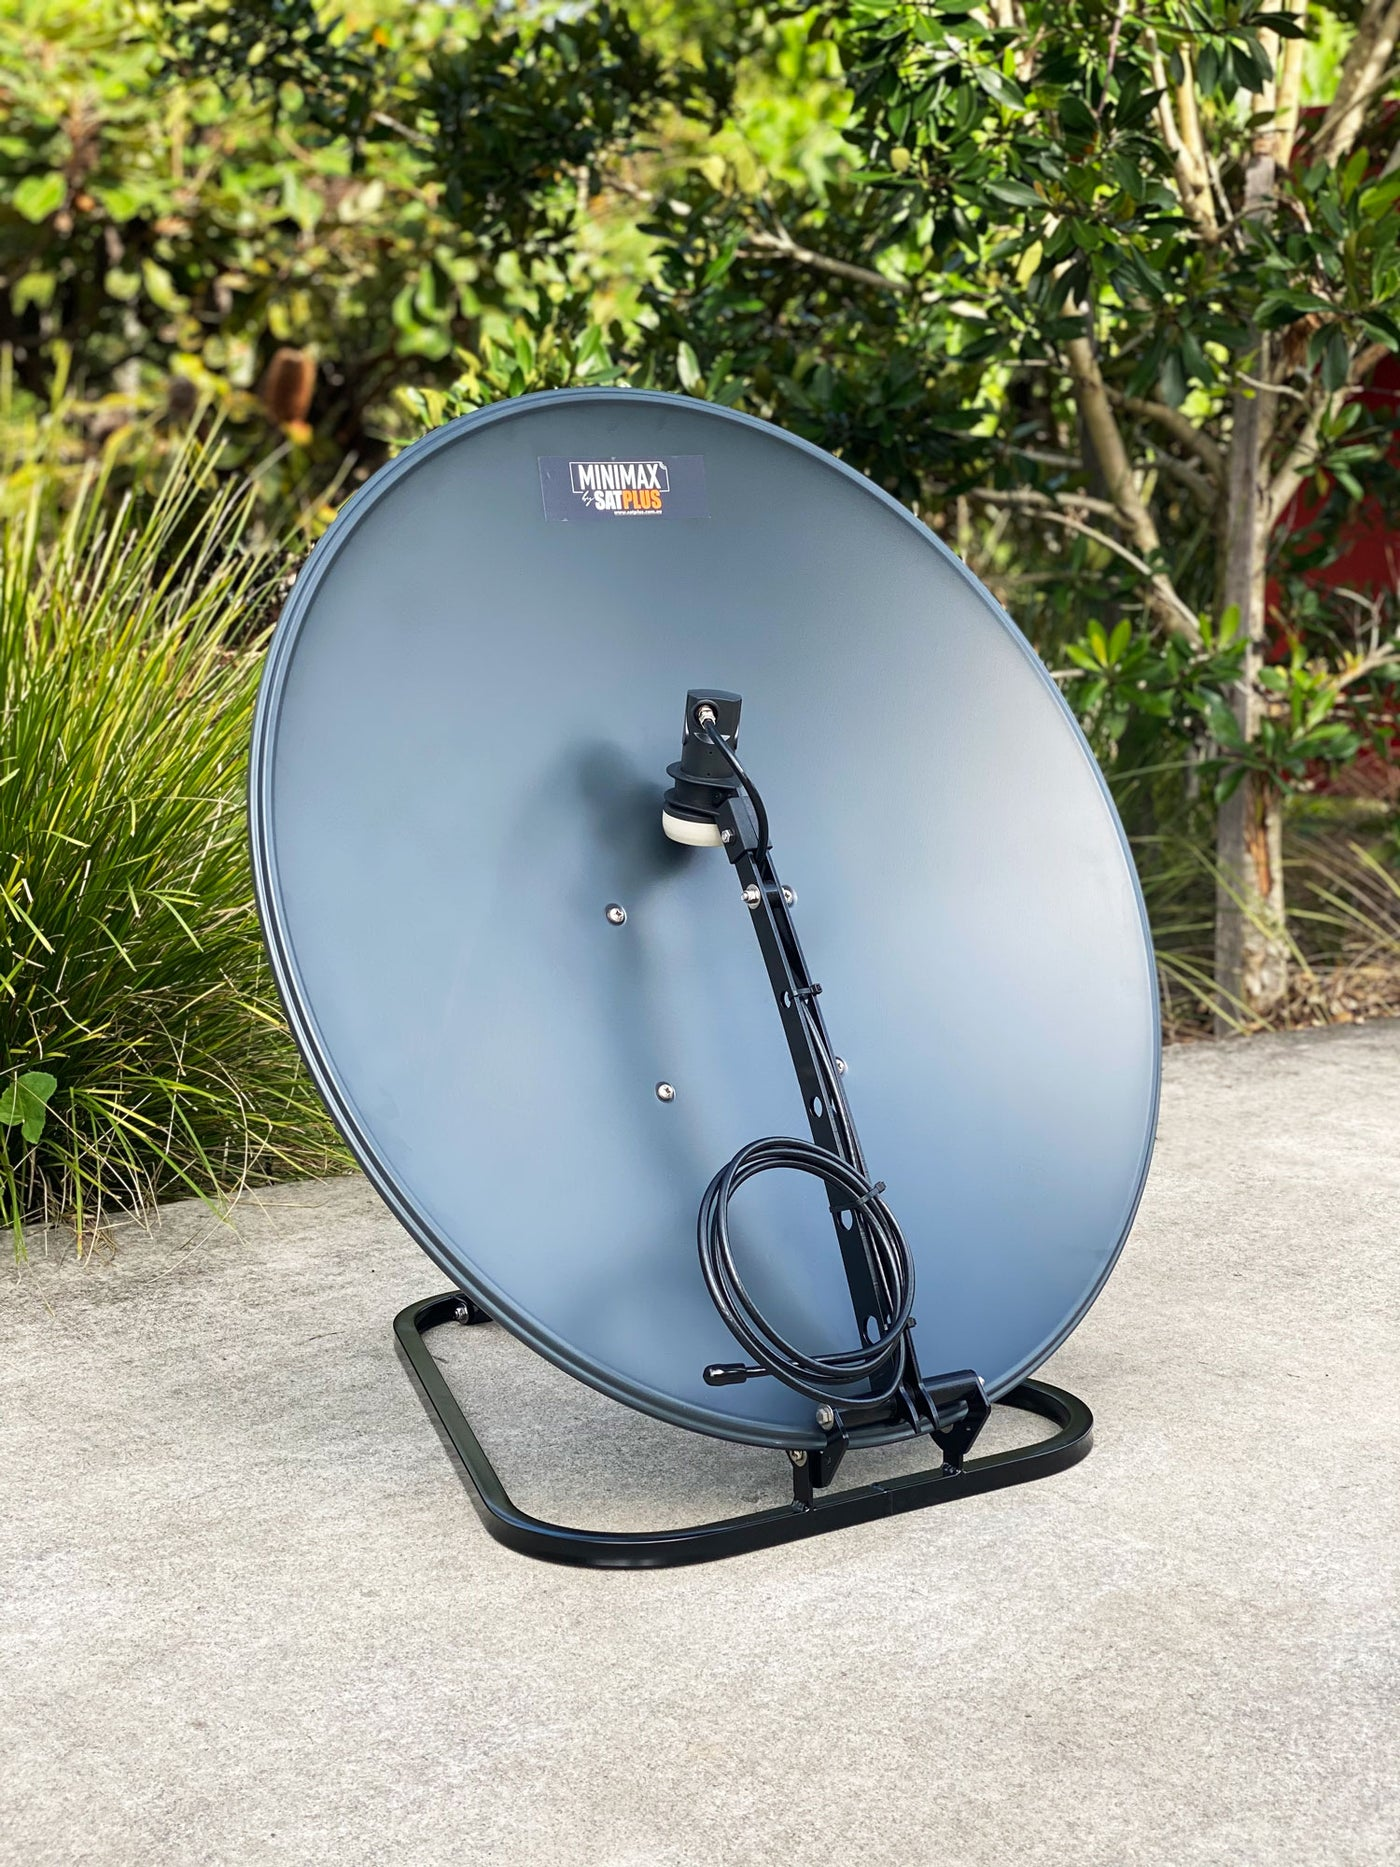 Australian Made MiniMax Caravan Satellite Dishes - Now In Stock!